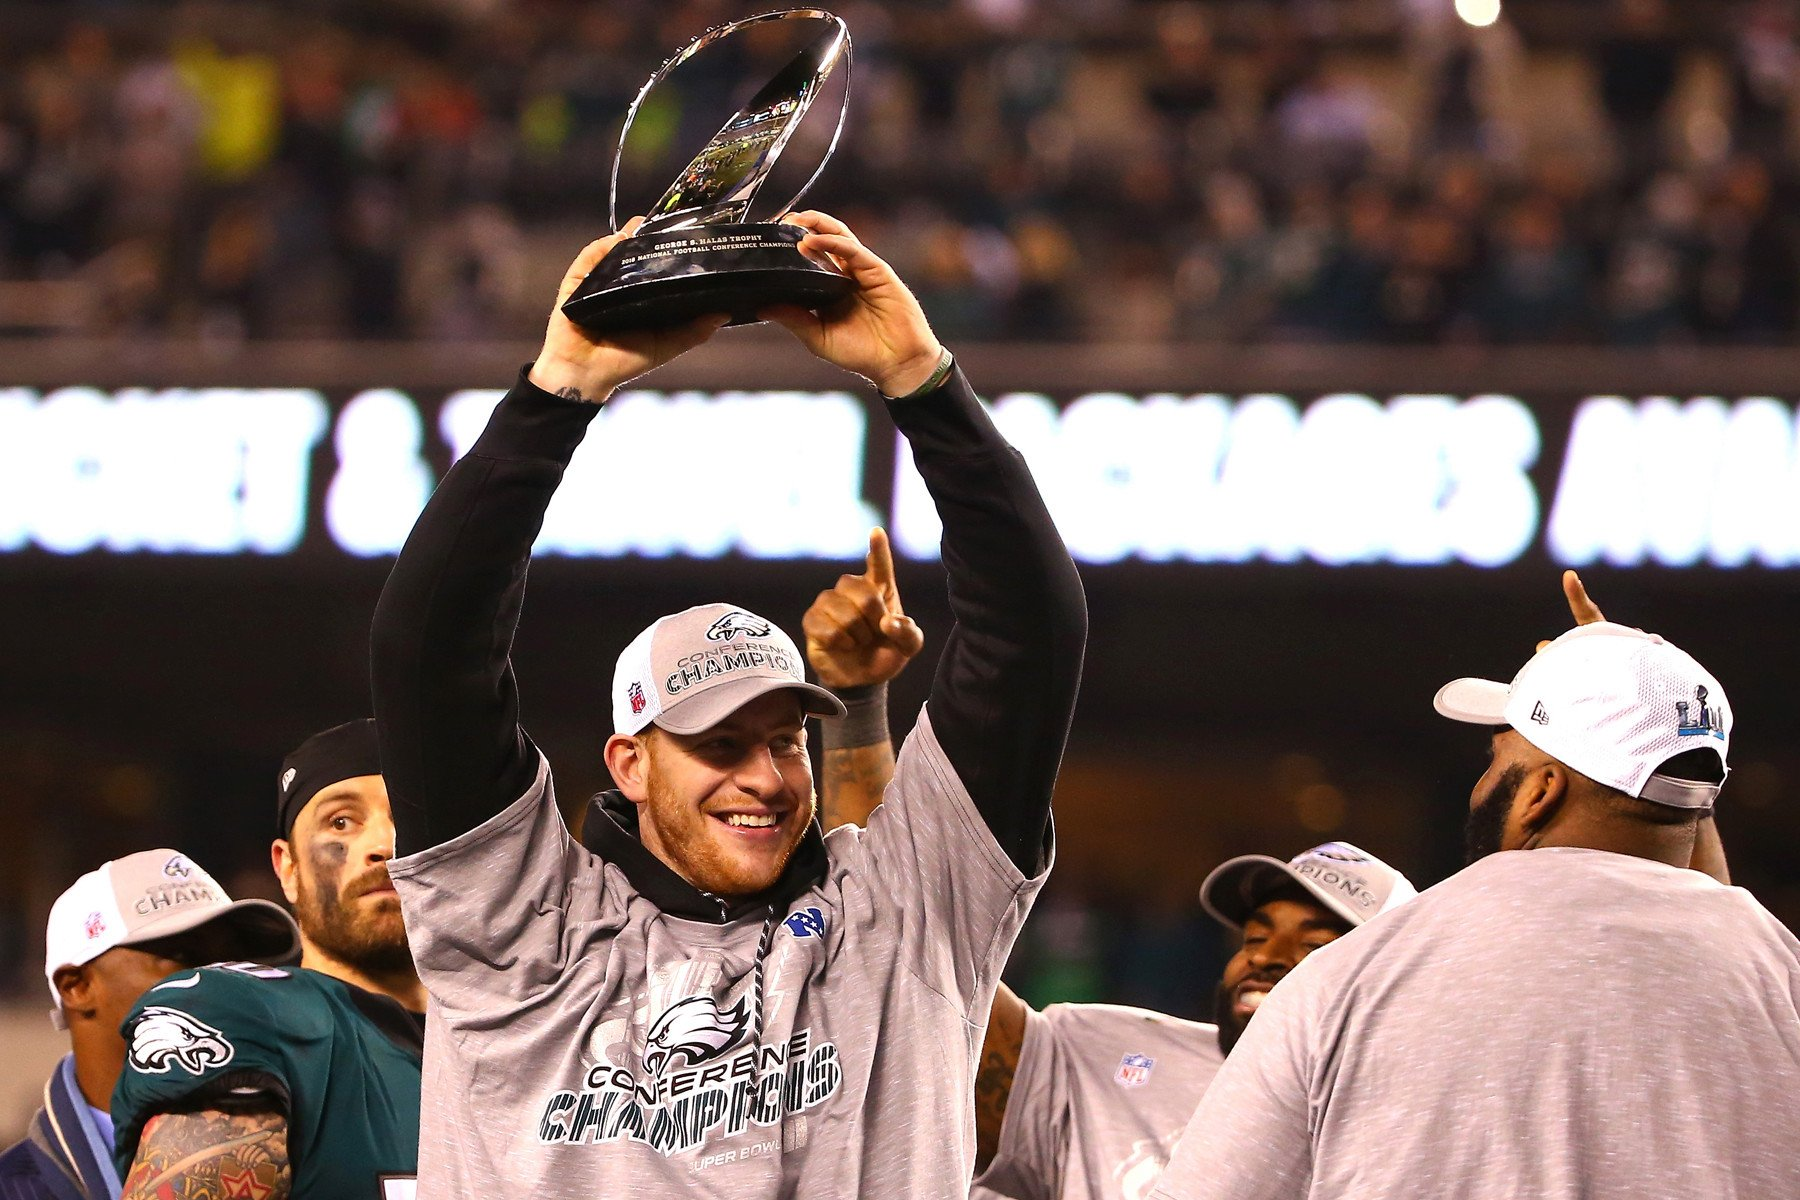 Carson Wentz has one word to describe watching Eagles' run